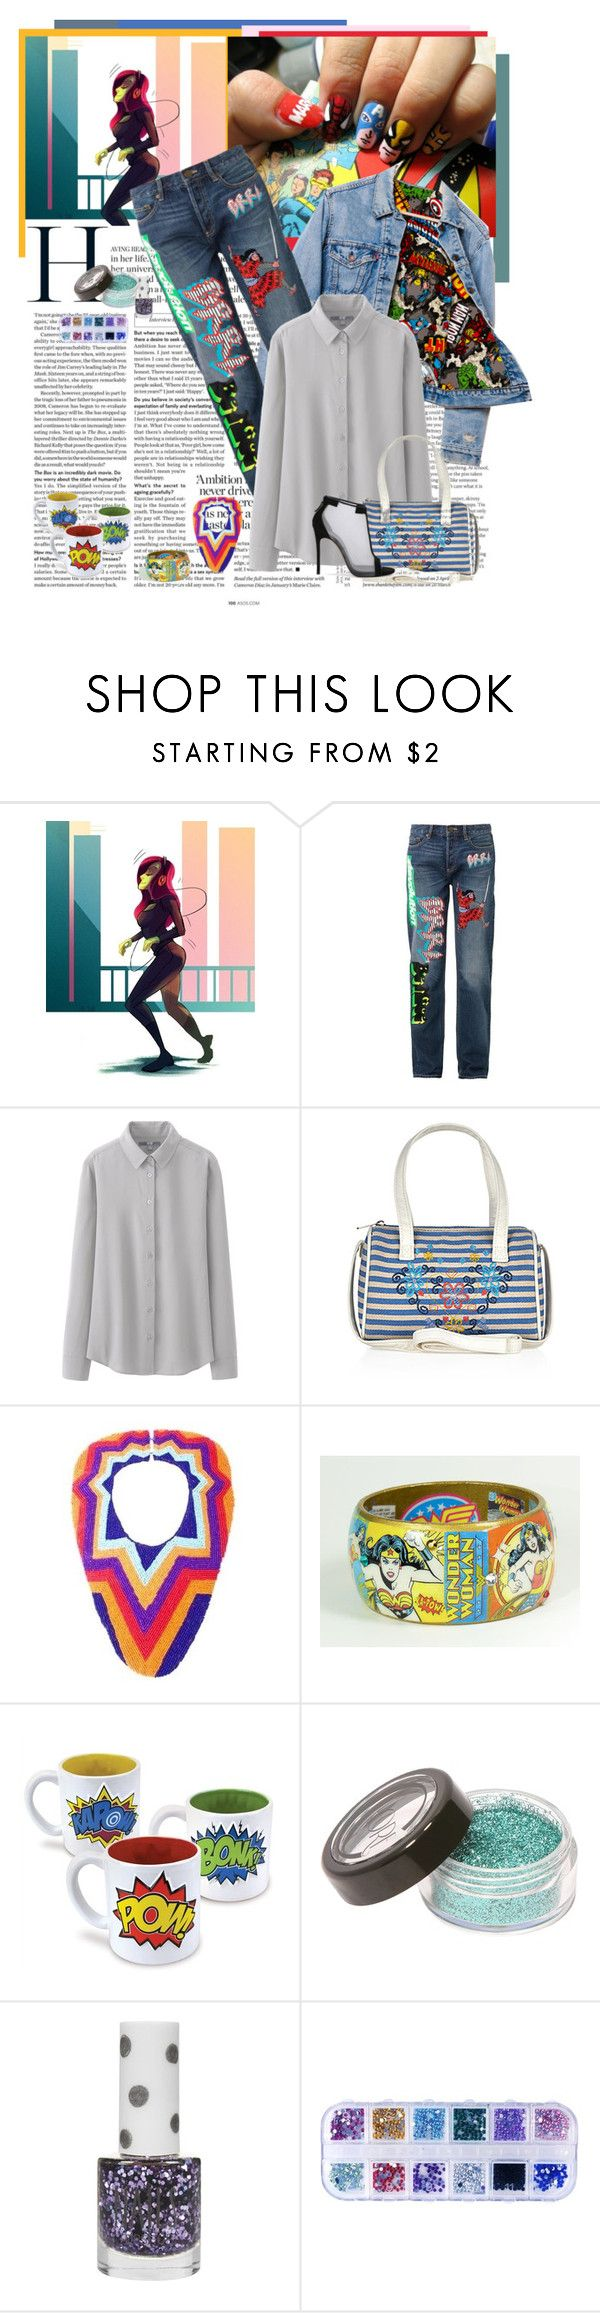 """""""Cartoon Patches"""" by feelgood35 ❤ liked on Polyvore featuring ASOS, Levi's, Marc by Marc Jacobs, Uniqlo, Monsoon, Papiroga, Topshop, Casadei, denim and Heels"""